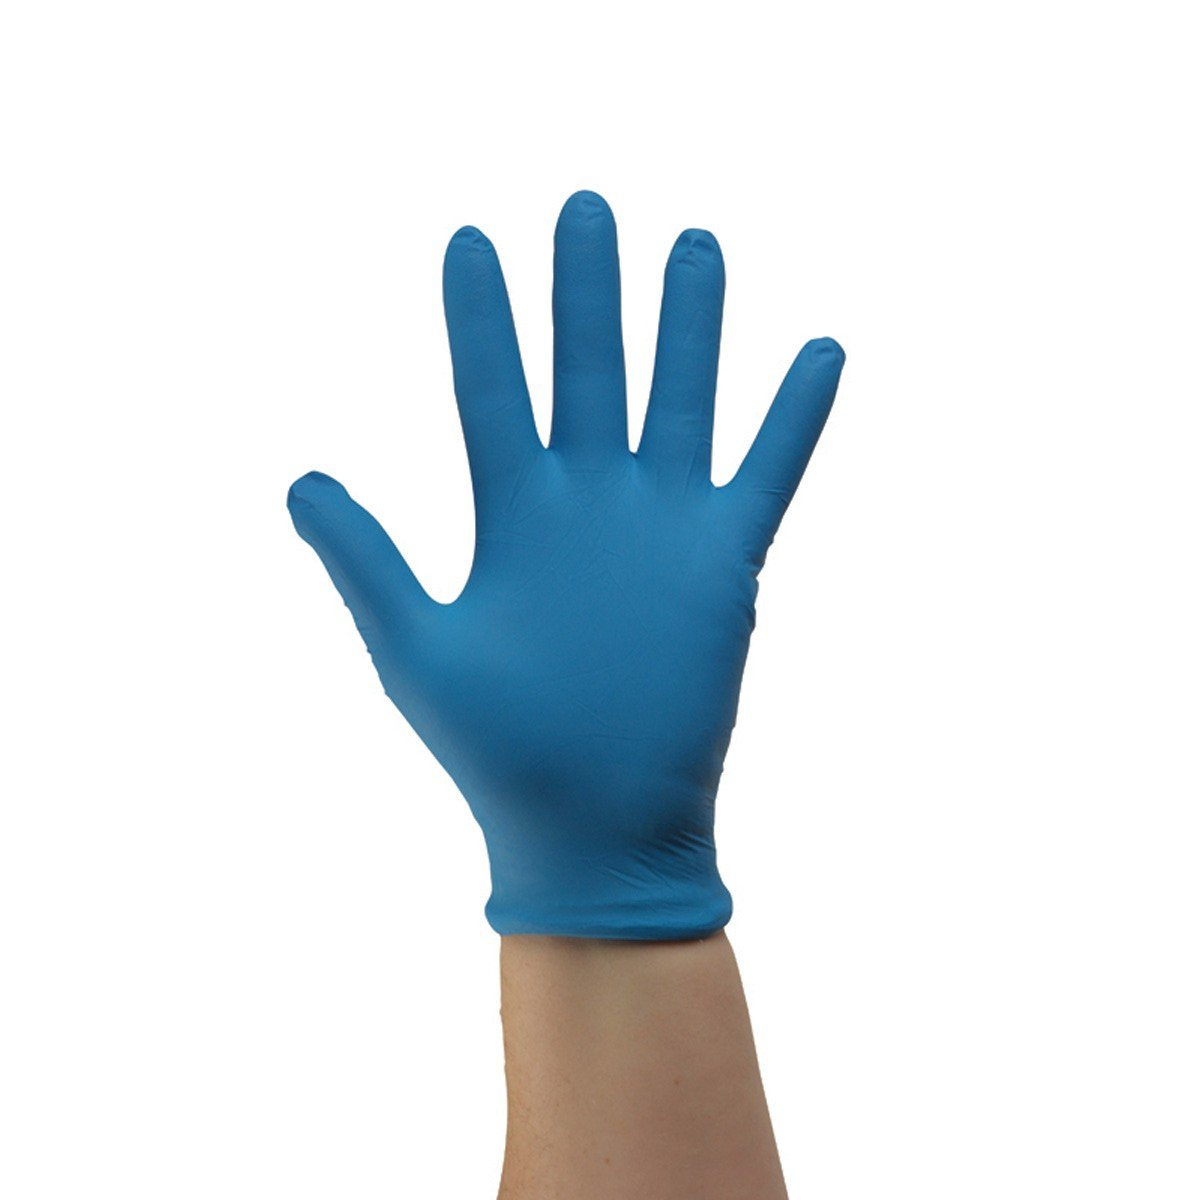 UltraSource 441230-4XL Disposable Nitrile Gloves, 6 mil, Powder Free, 4X-Large, Blue (Pack of 100) by UltraSource